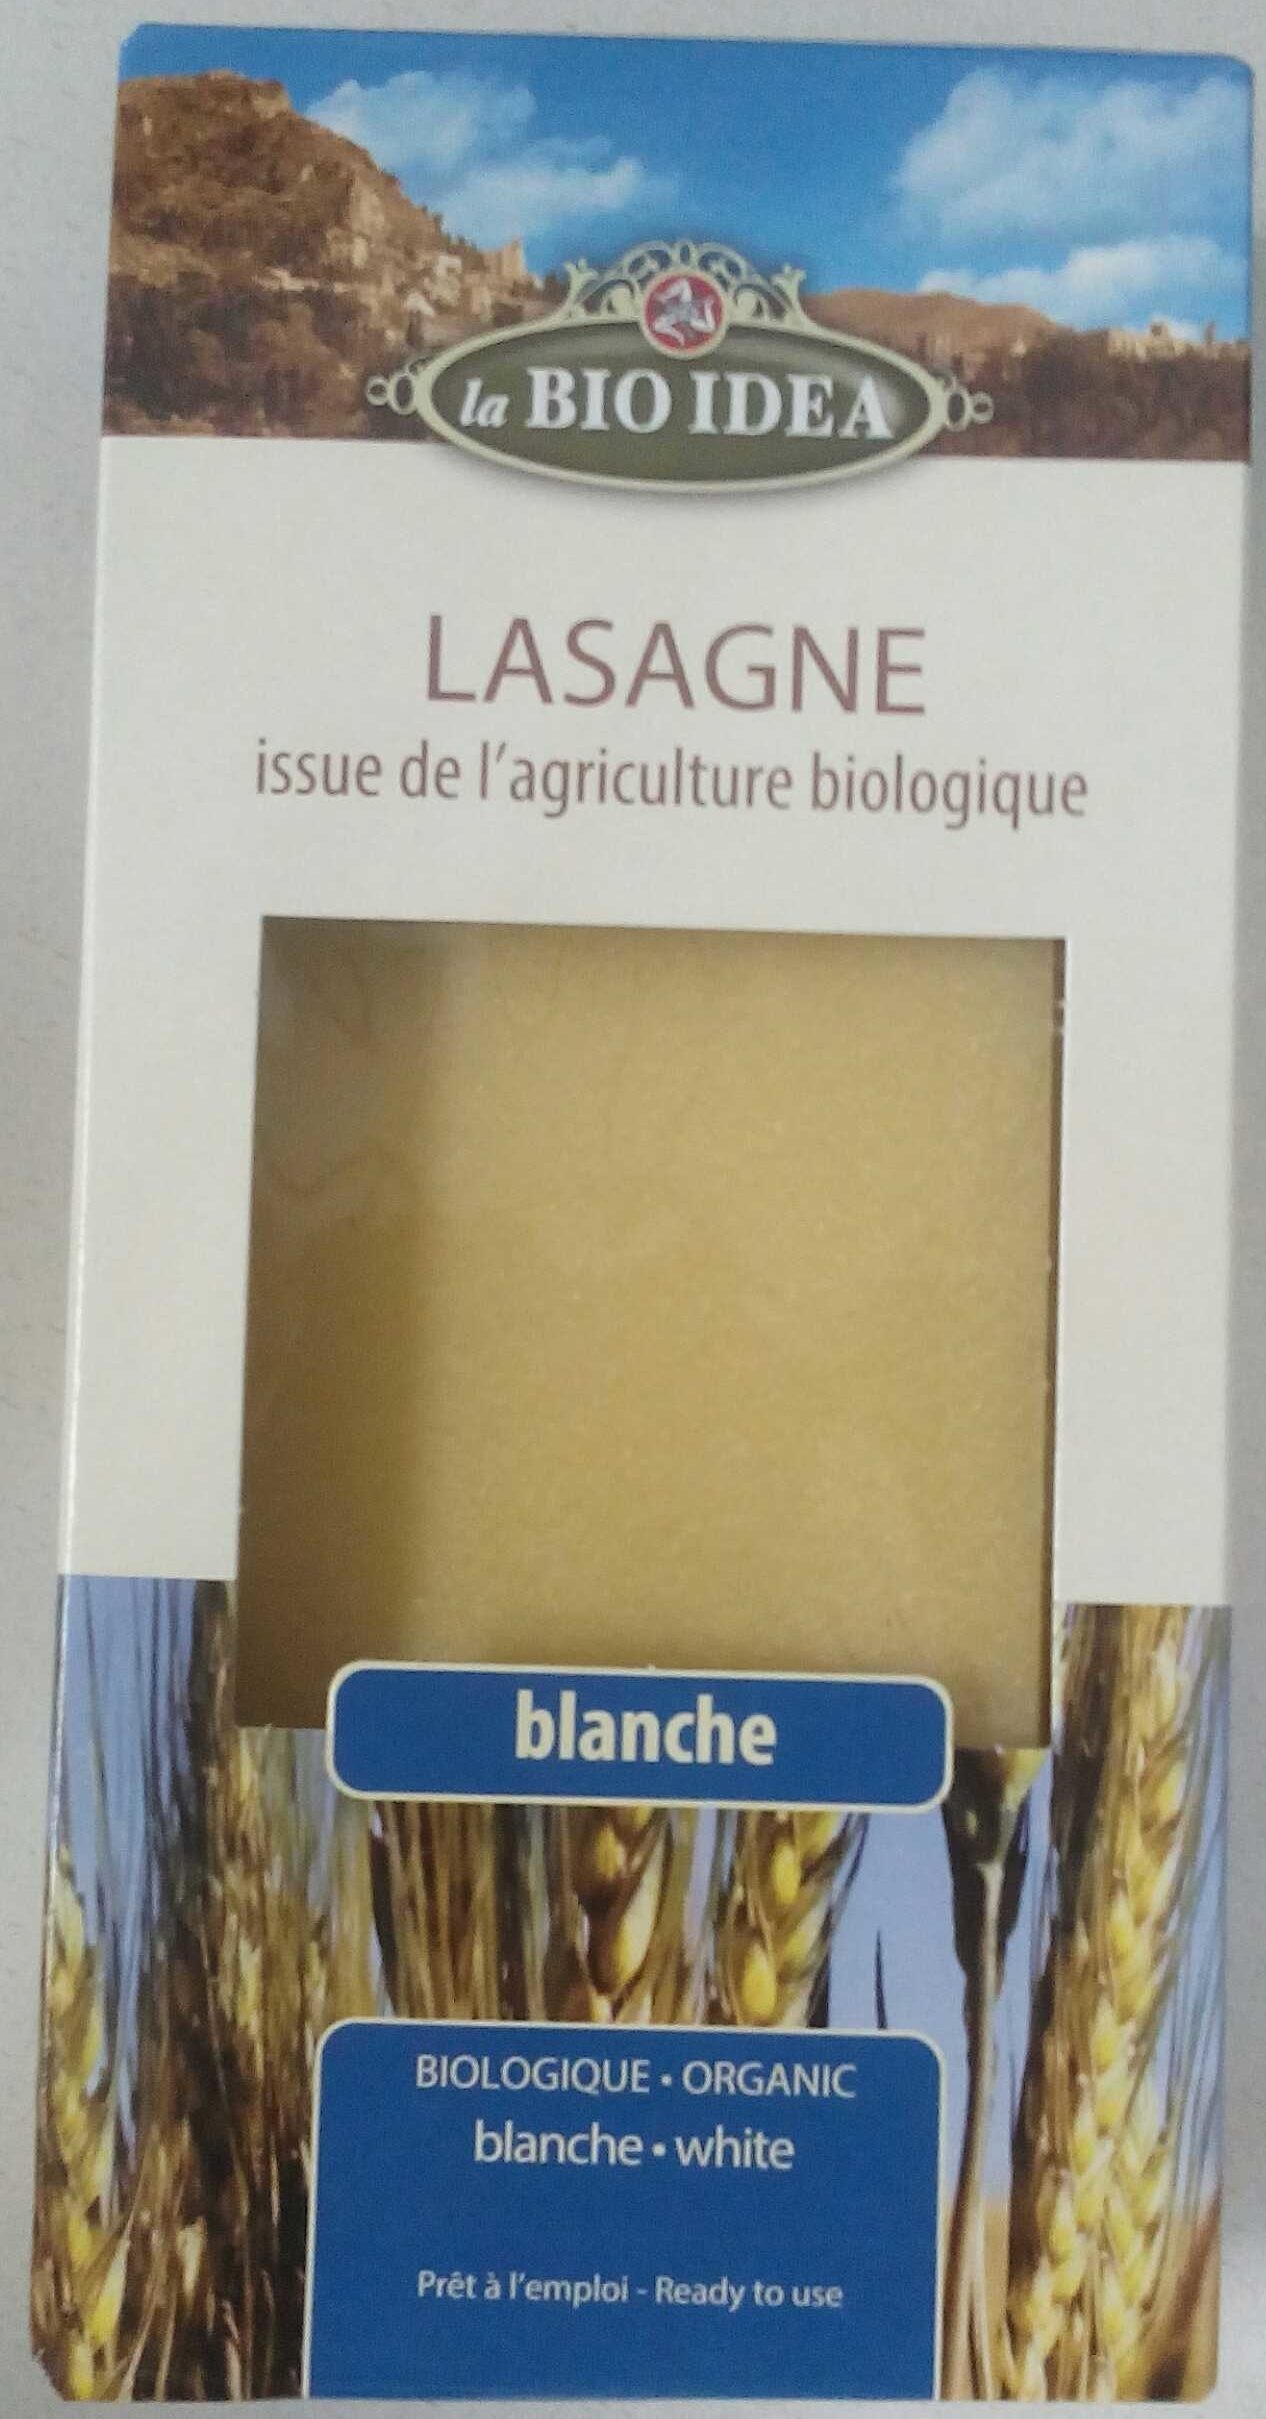 Lasagne blanche - Product - fr